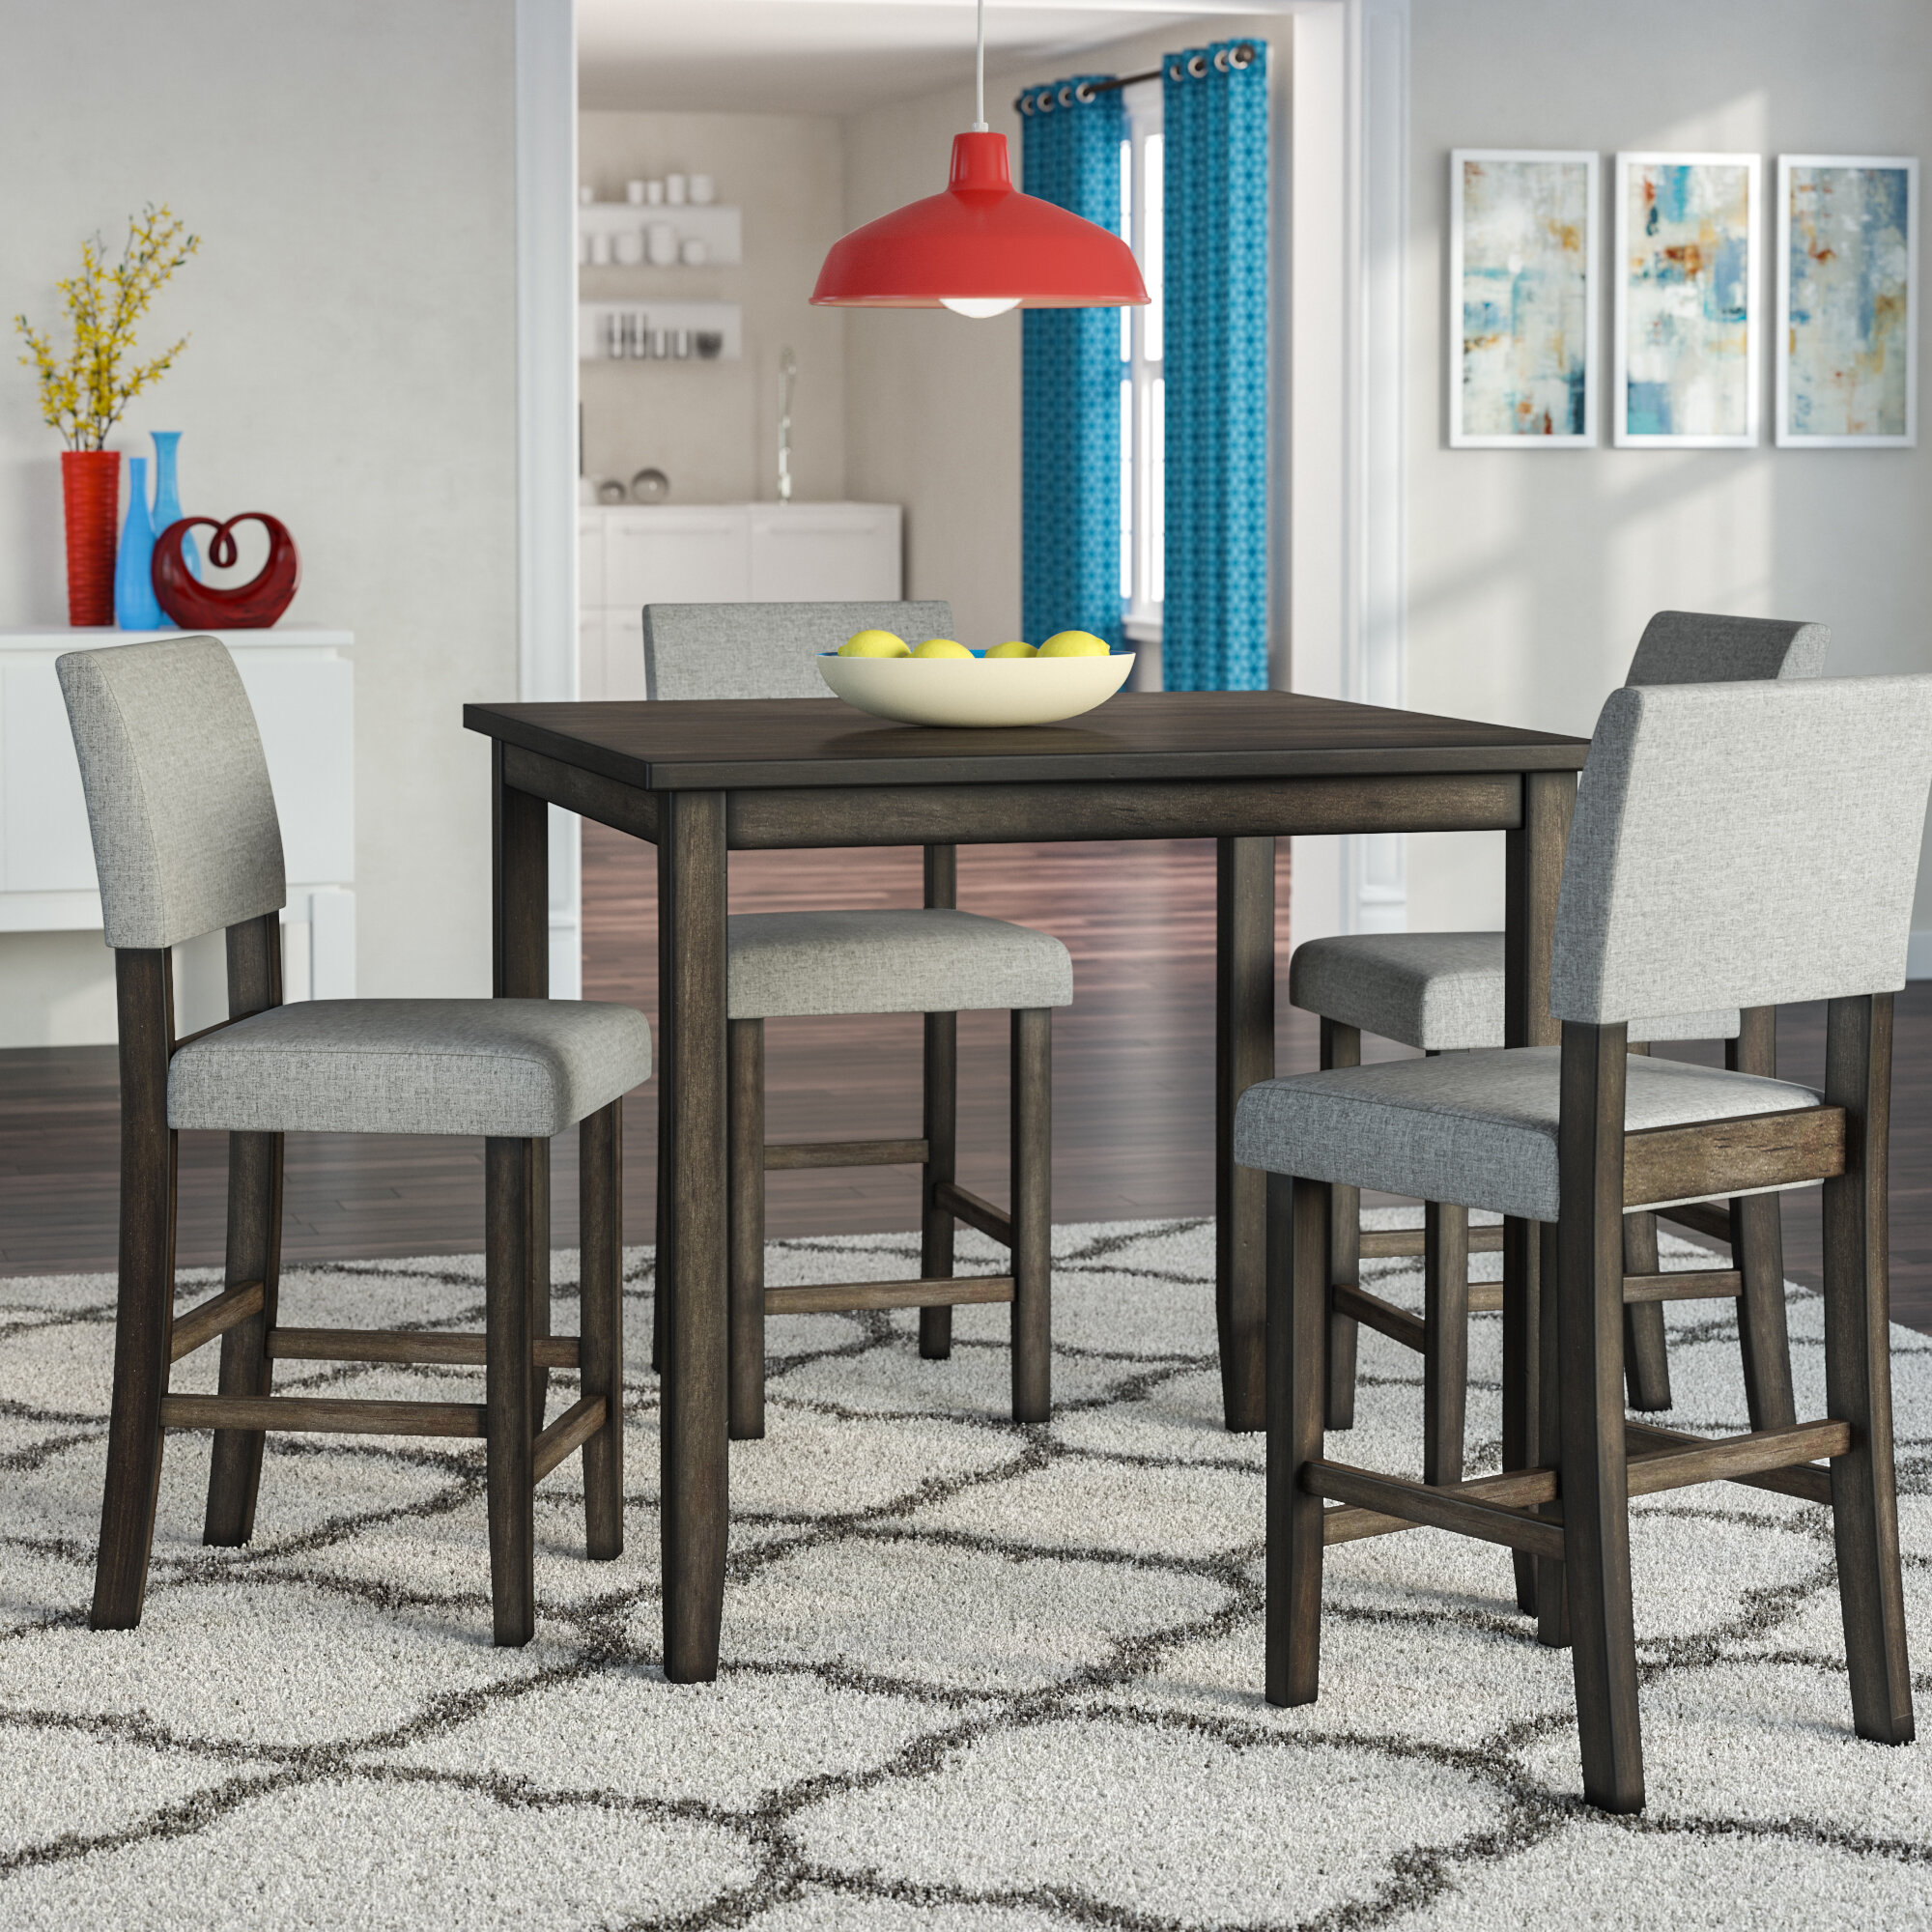 Details About Ebern Designs Terrazas 5 Piece Dining Set For Most Popular Lightle 5 Piece Breakfast Nook Dining Sets (Image 7 of 20)